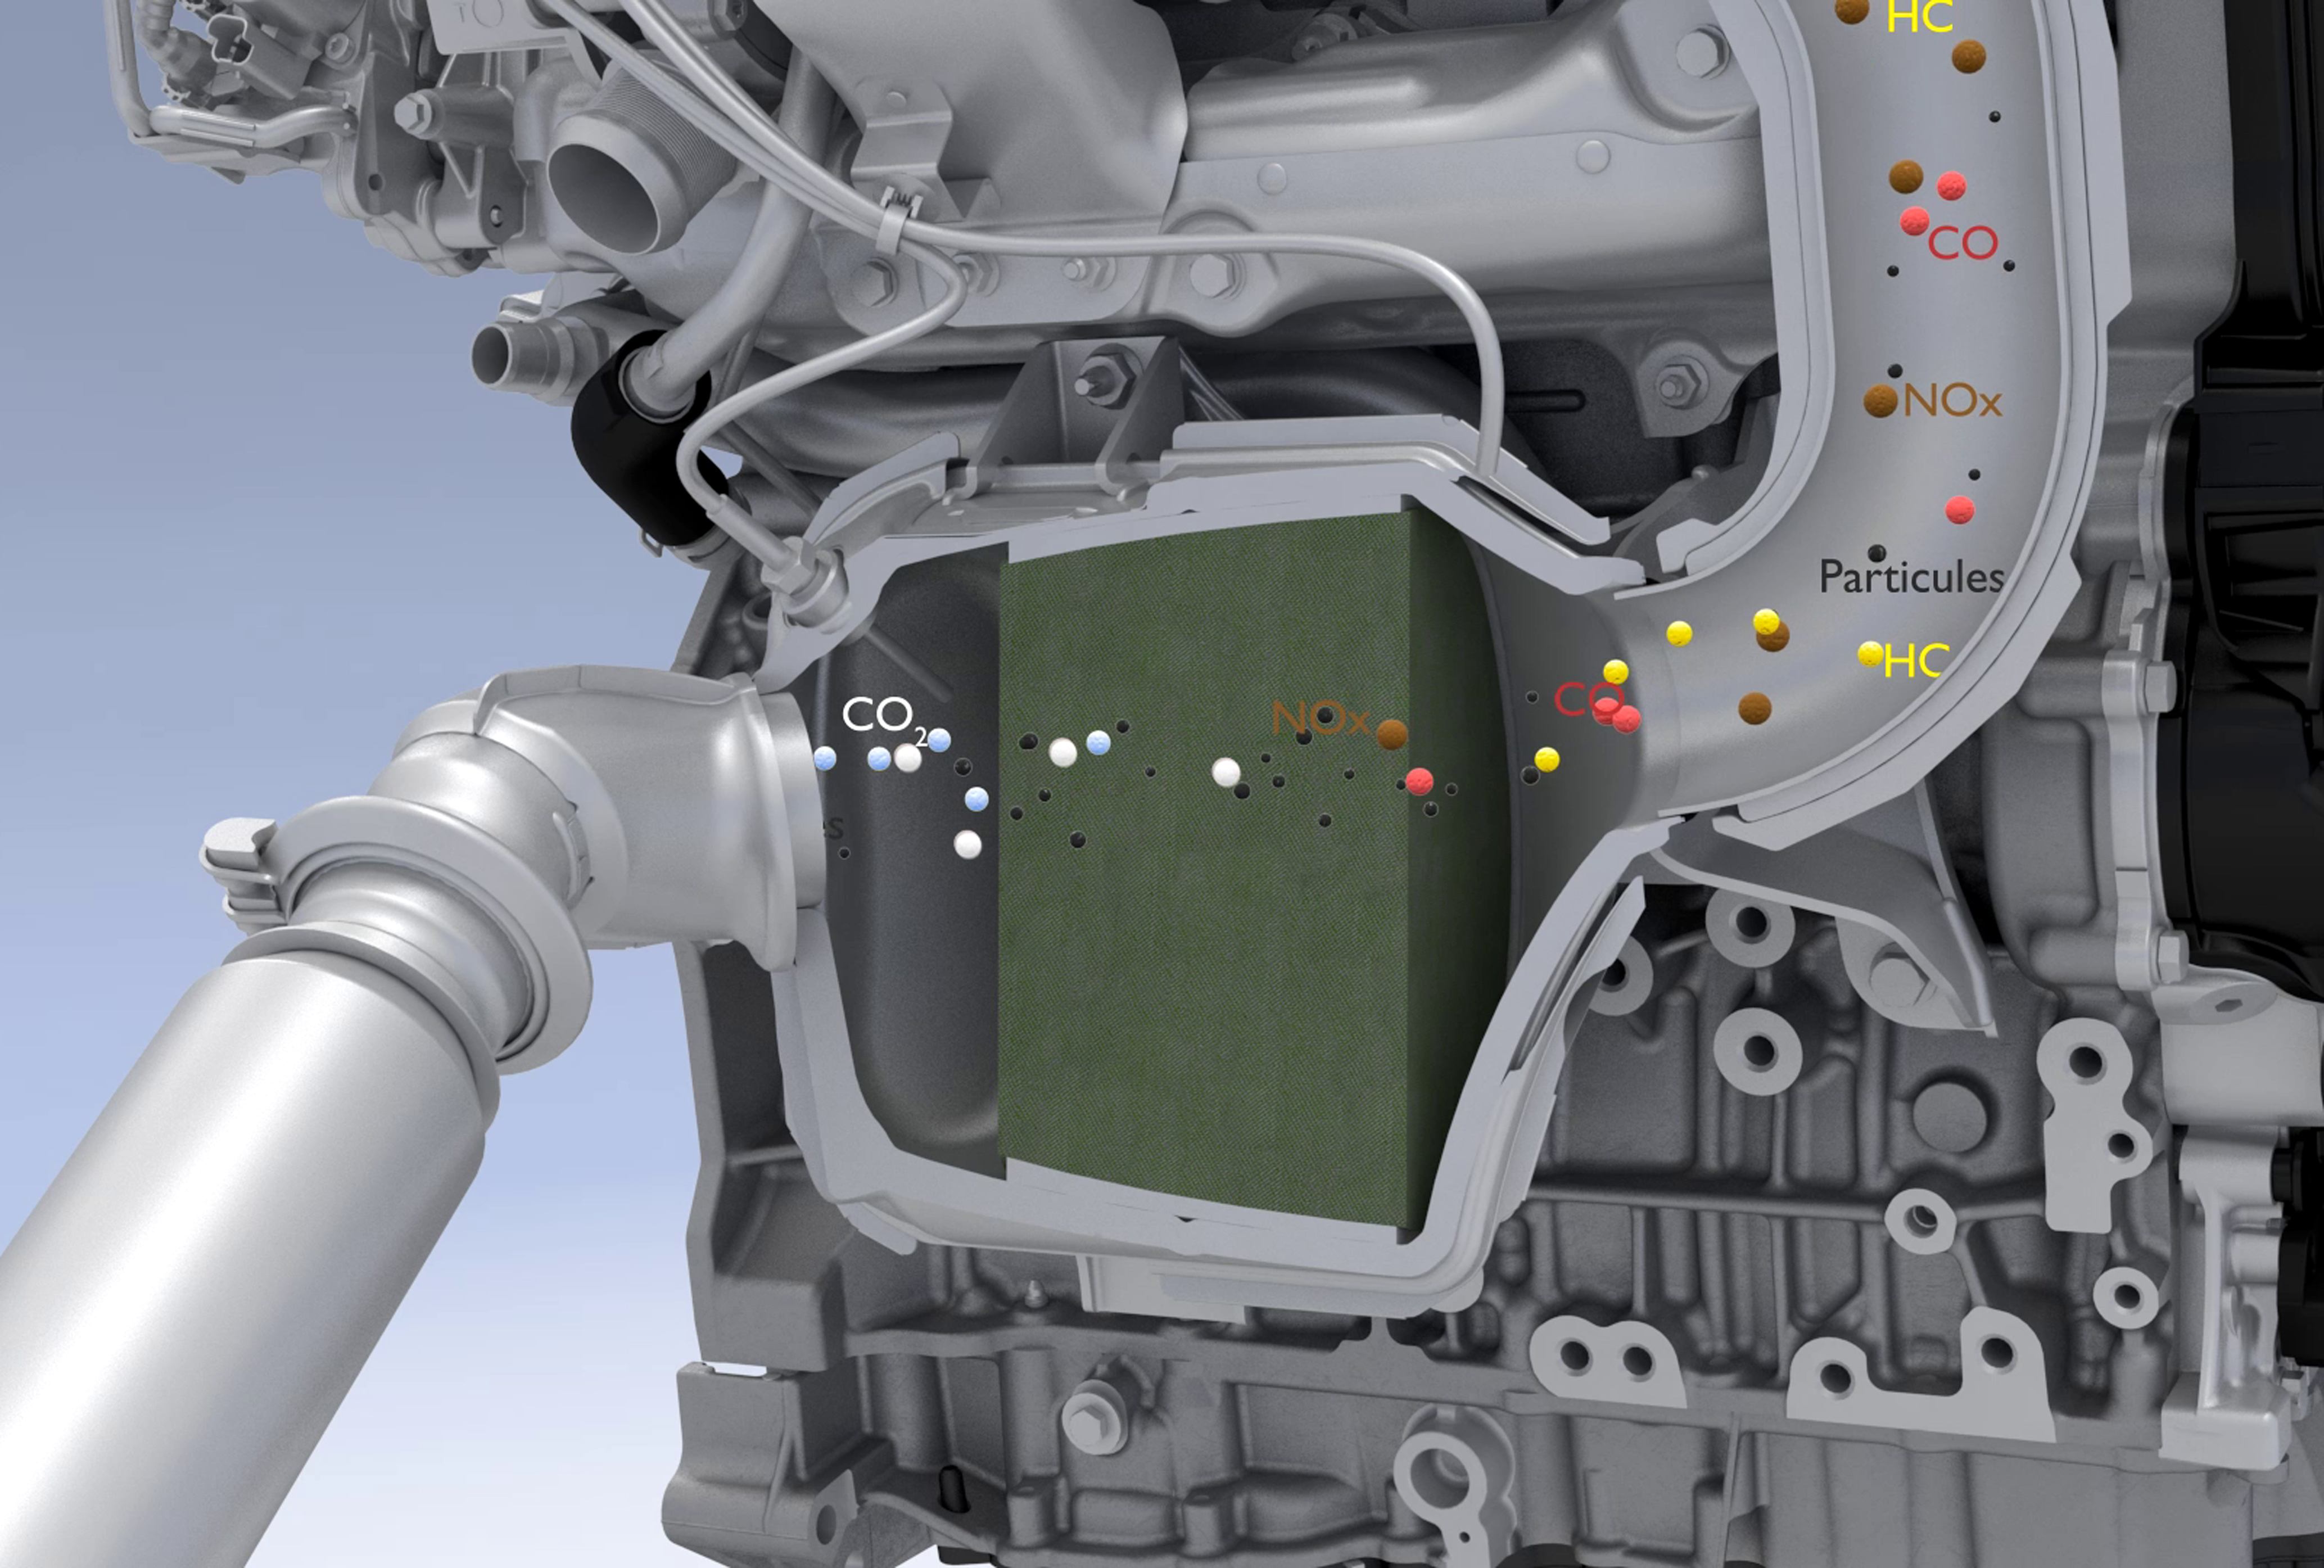 psa peugeot citroen proudly announces its diesel engines comply with